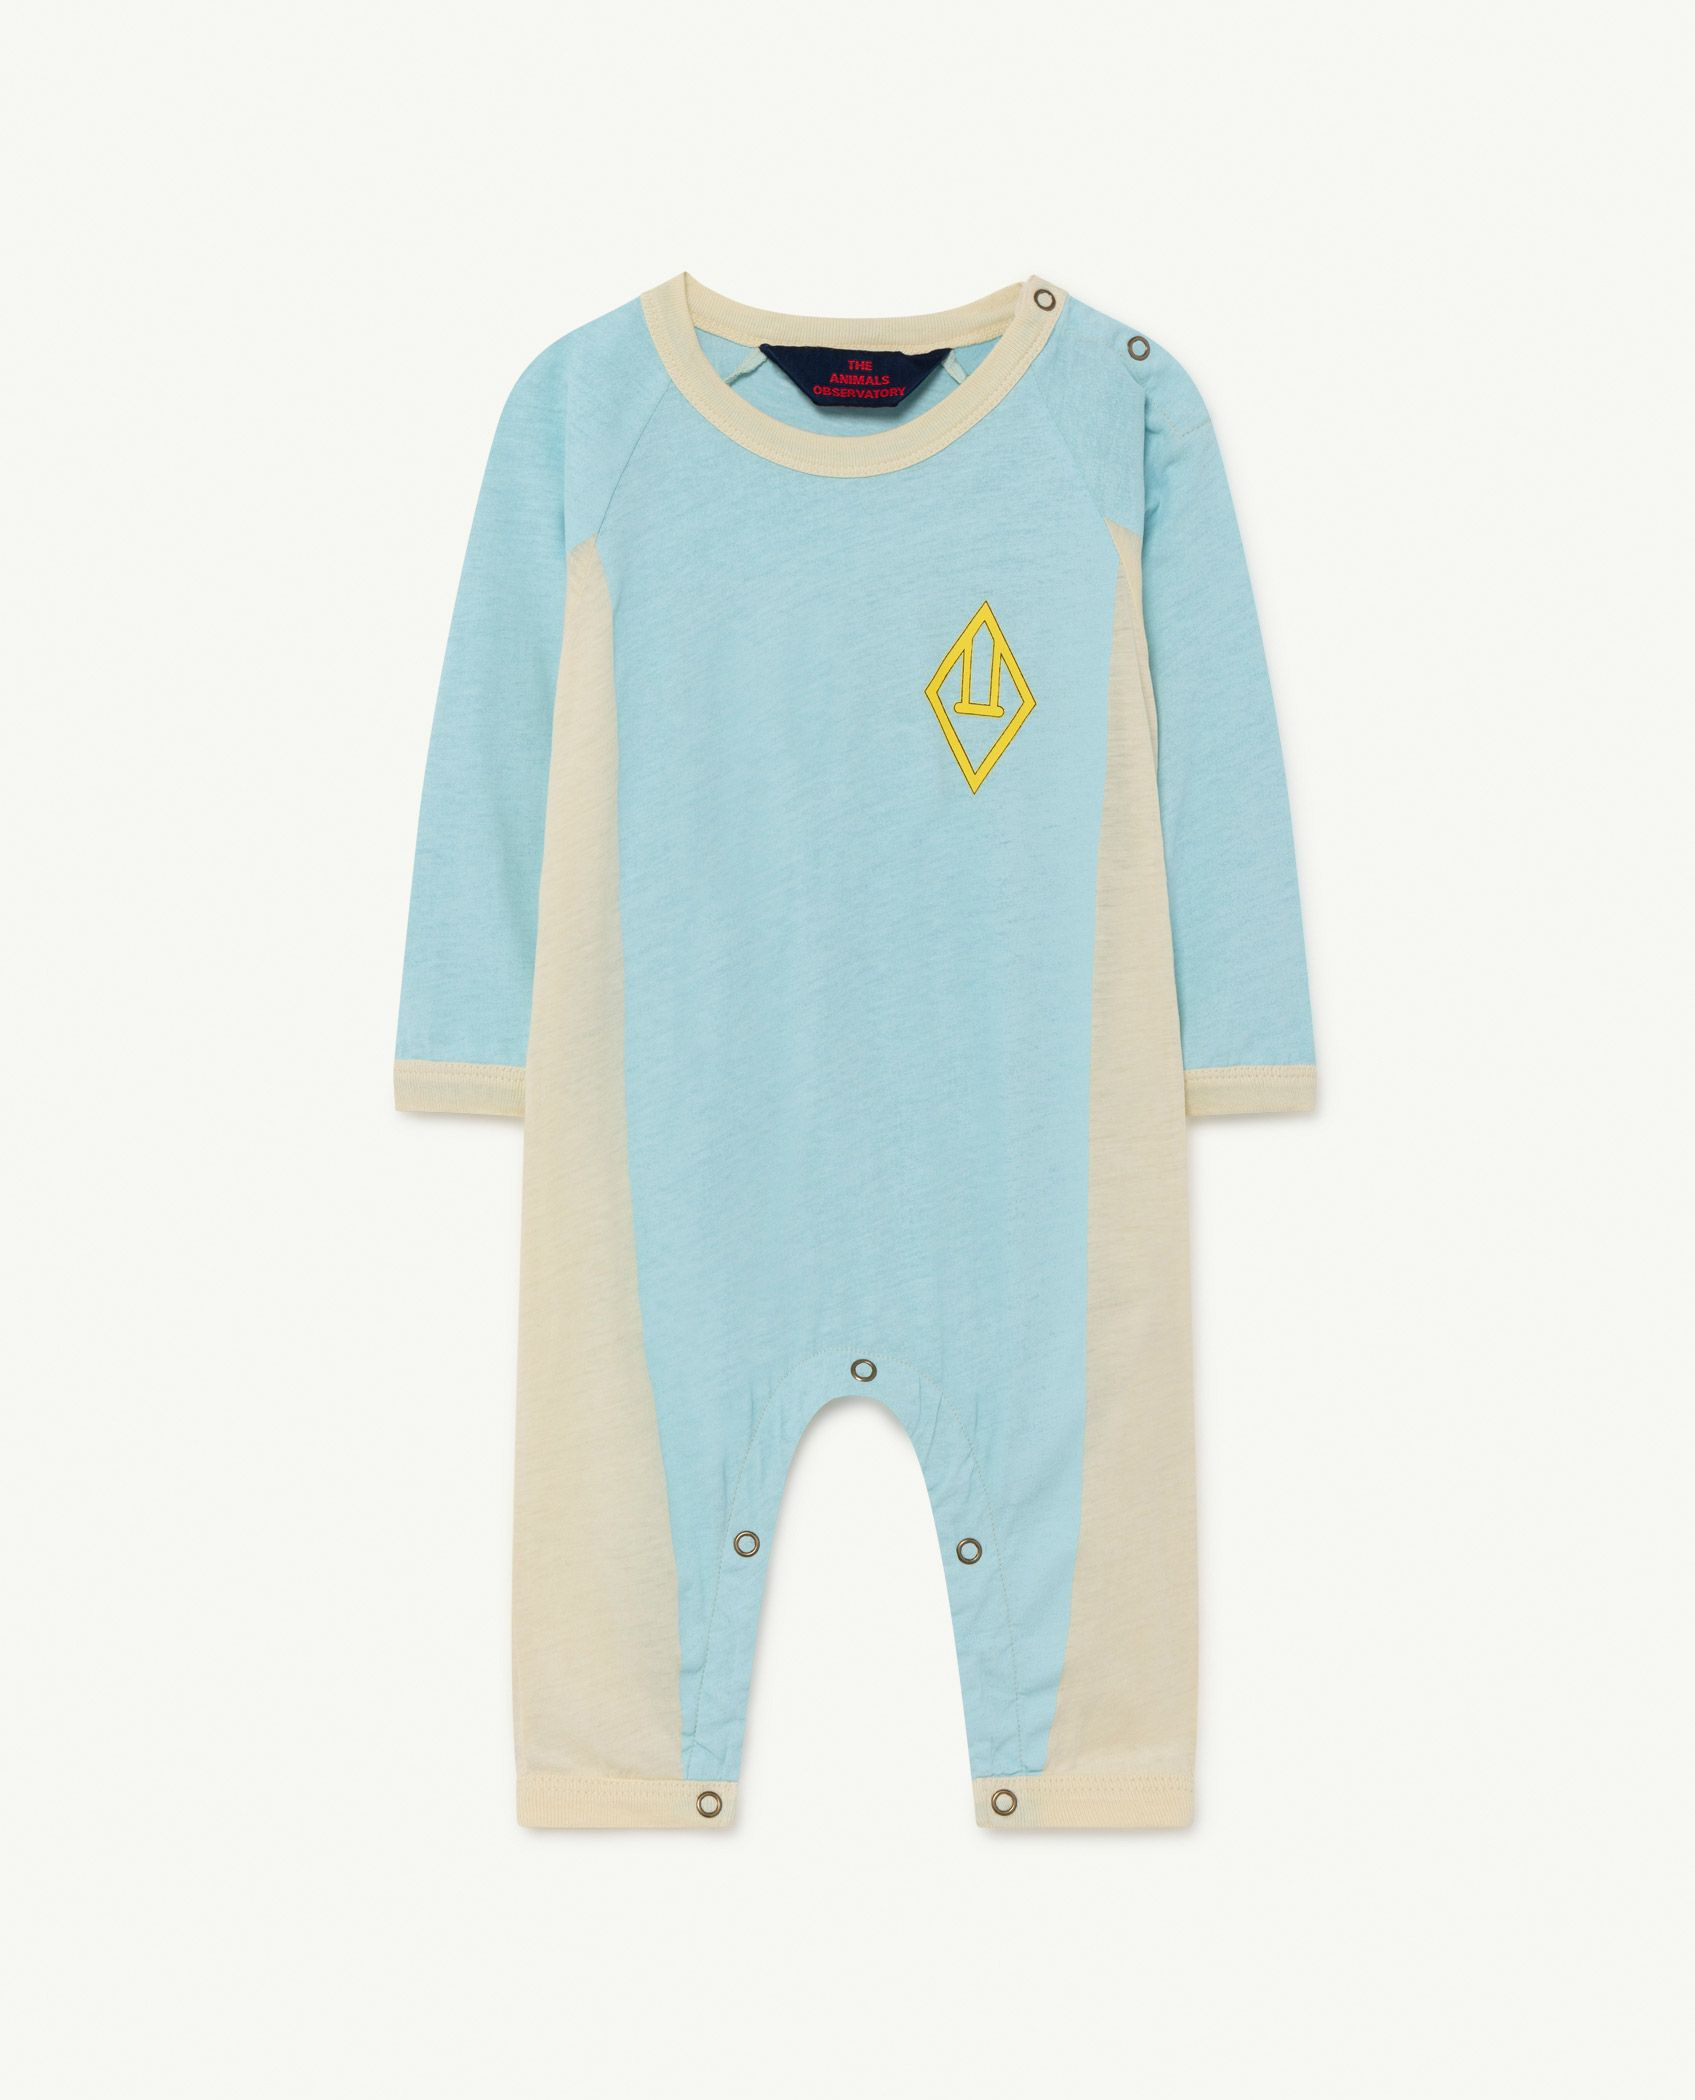 Owl Baby Clothes : clothes, White, Stripes, Pyjamas, Babies, Animals, Observatory, Clothes